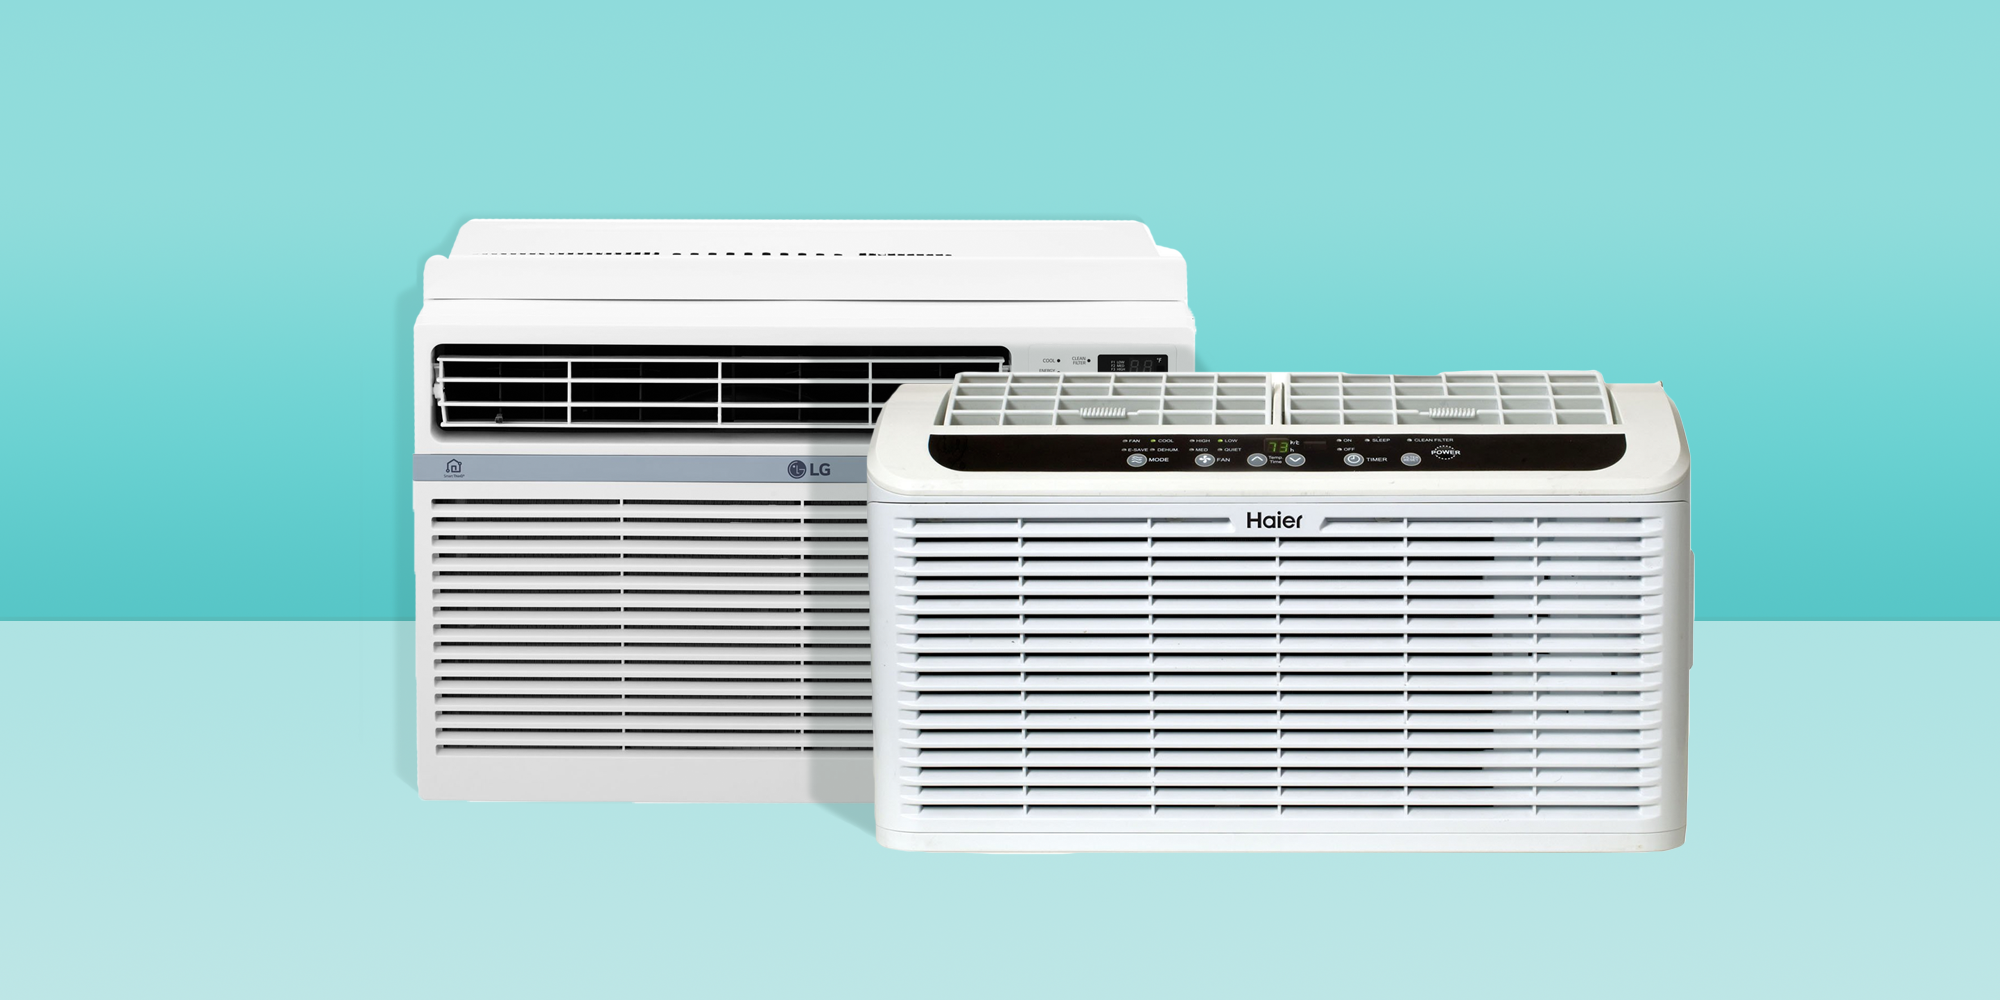 5 Best Window Air Conditioners 2021 - Top Small Window AC Units to Buy